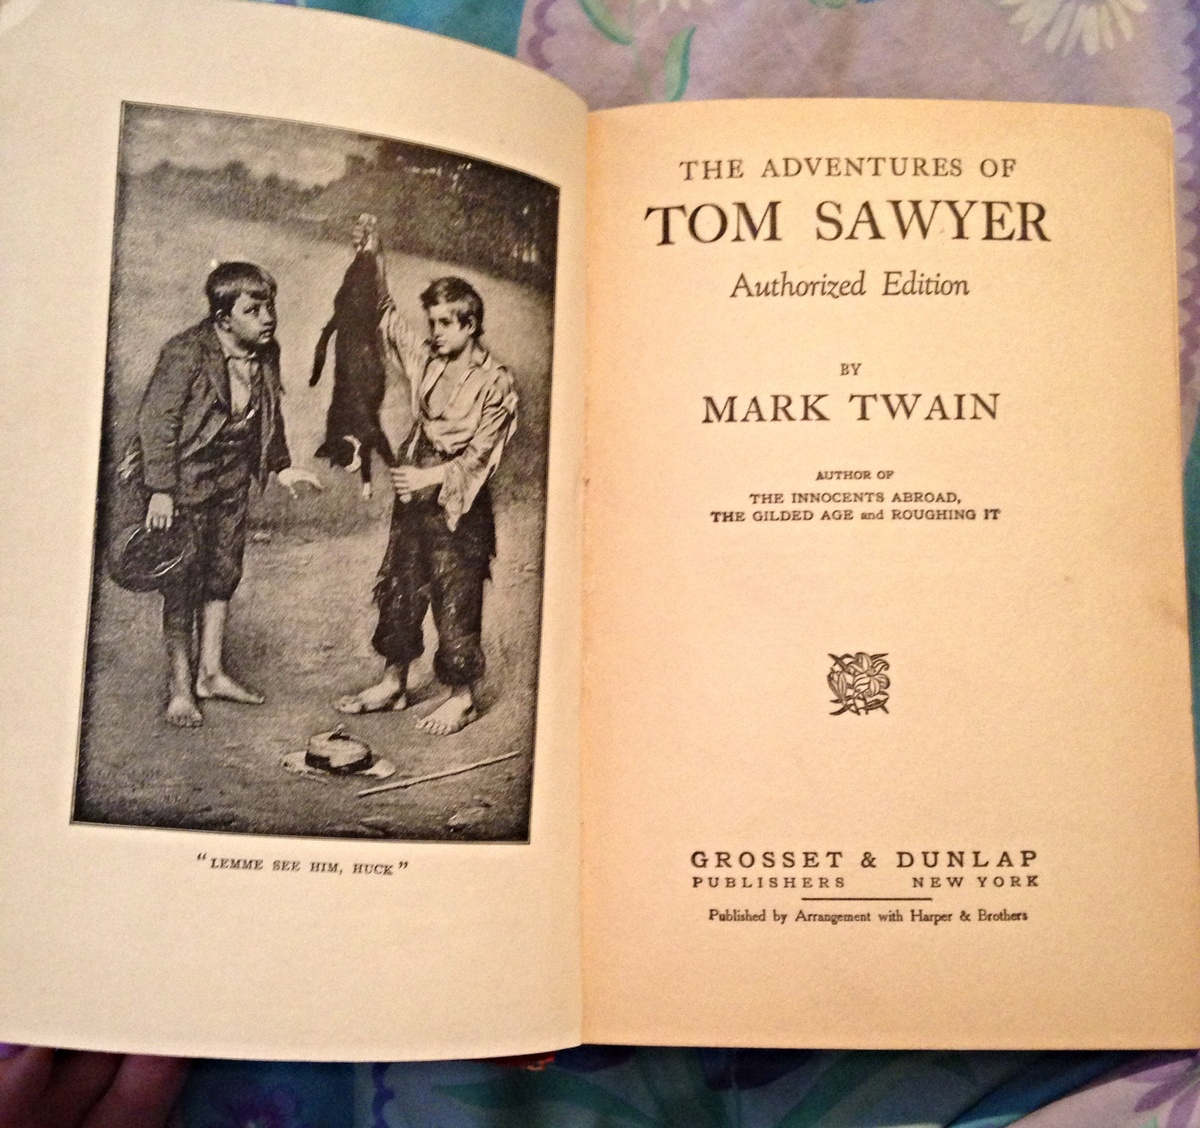 an introduction to the story of tom sawyer by mark twain The adventures of tom sawyer mark twain touched upon were all prevalent among children and slaves in the west at the period of this story— that is to.